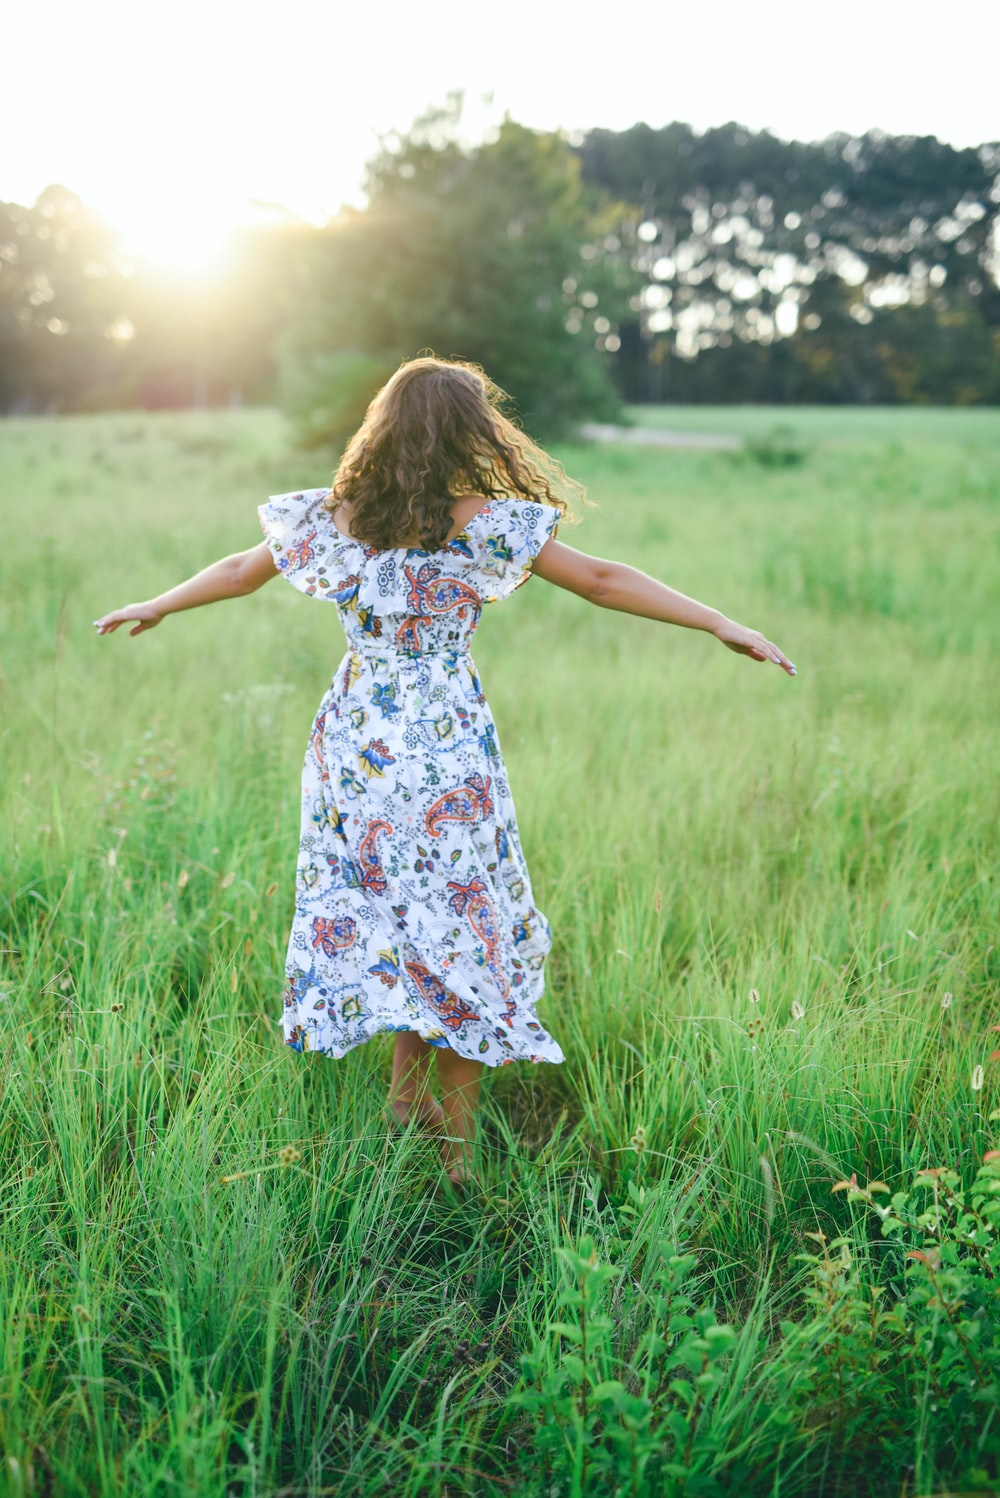 shallow focus photography of woman in white, blue, and green floral dress